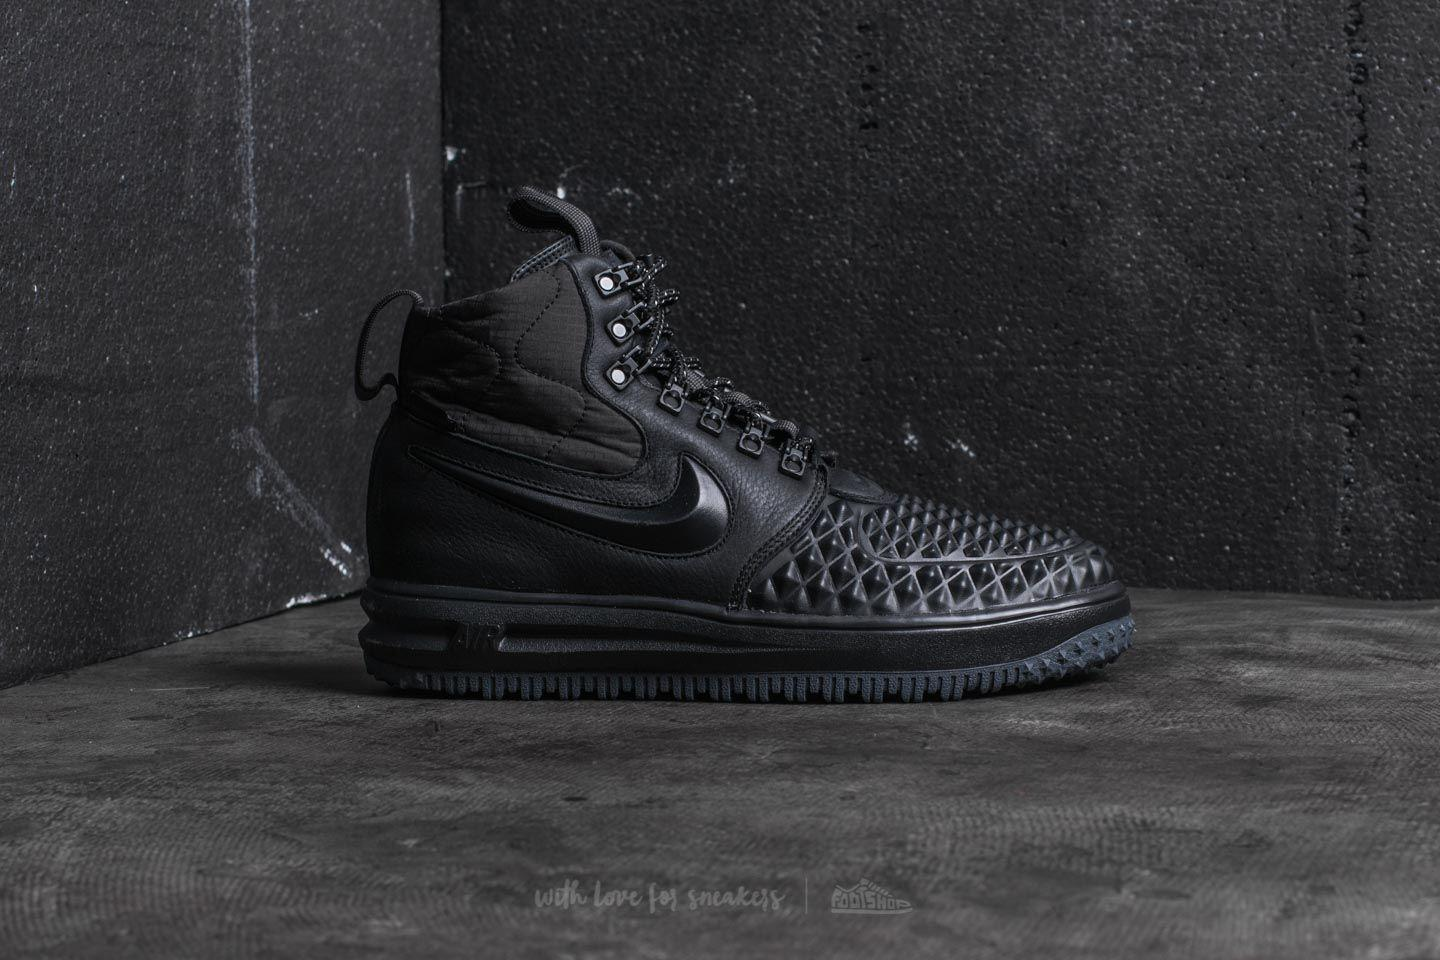 low cost b6f46 1a2be Nike Lunar Force 1 Duckboot ́17 Black  Black-anthracite in Black for ...